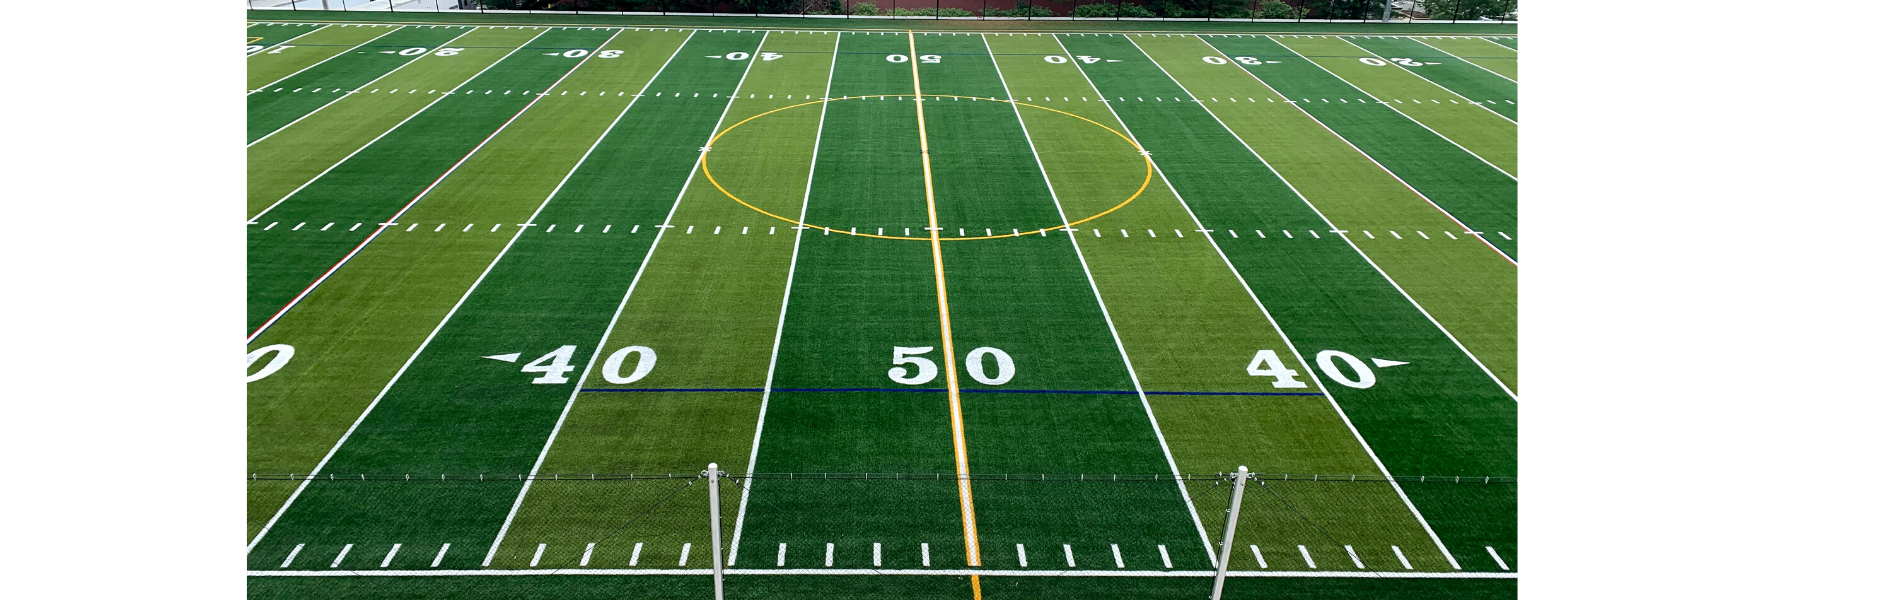 LMS Football field 50 yard Line